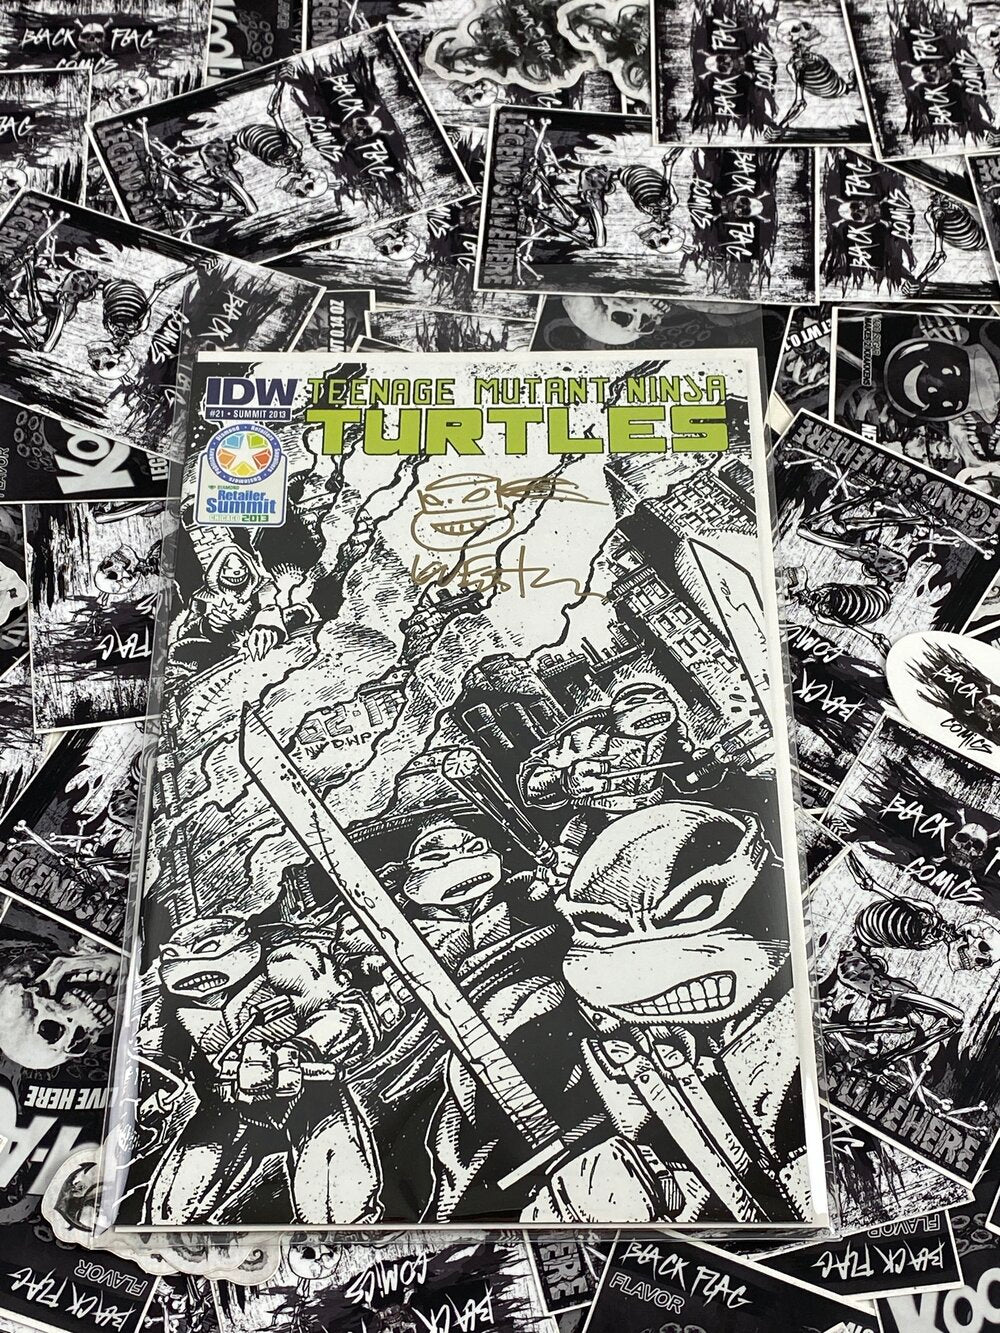 TMNT #2 Summit 2013 Variant Signed and Remarked by Kevin Eastman